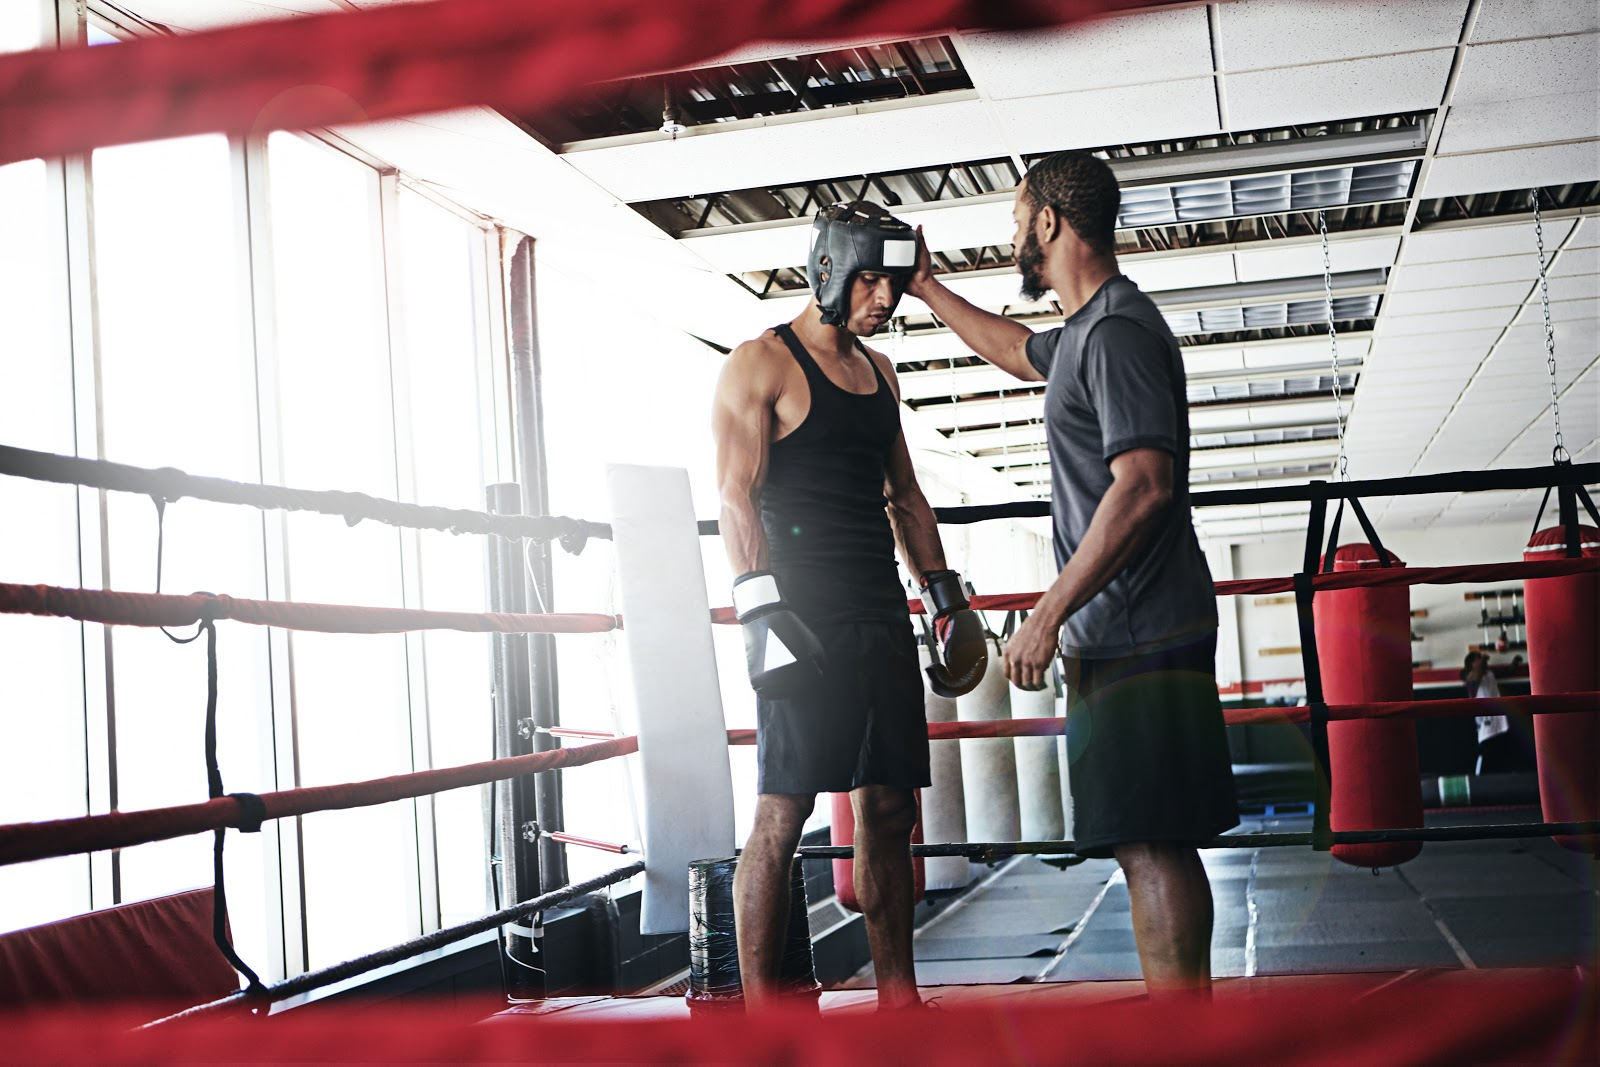 Boxing trainer instructing boxer in the ring to use head.